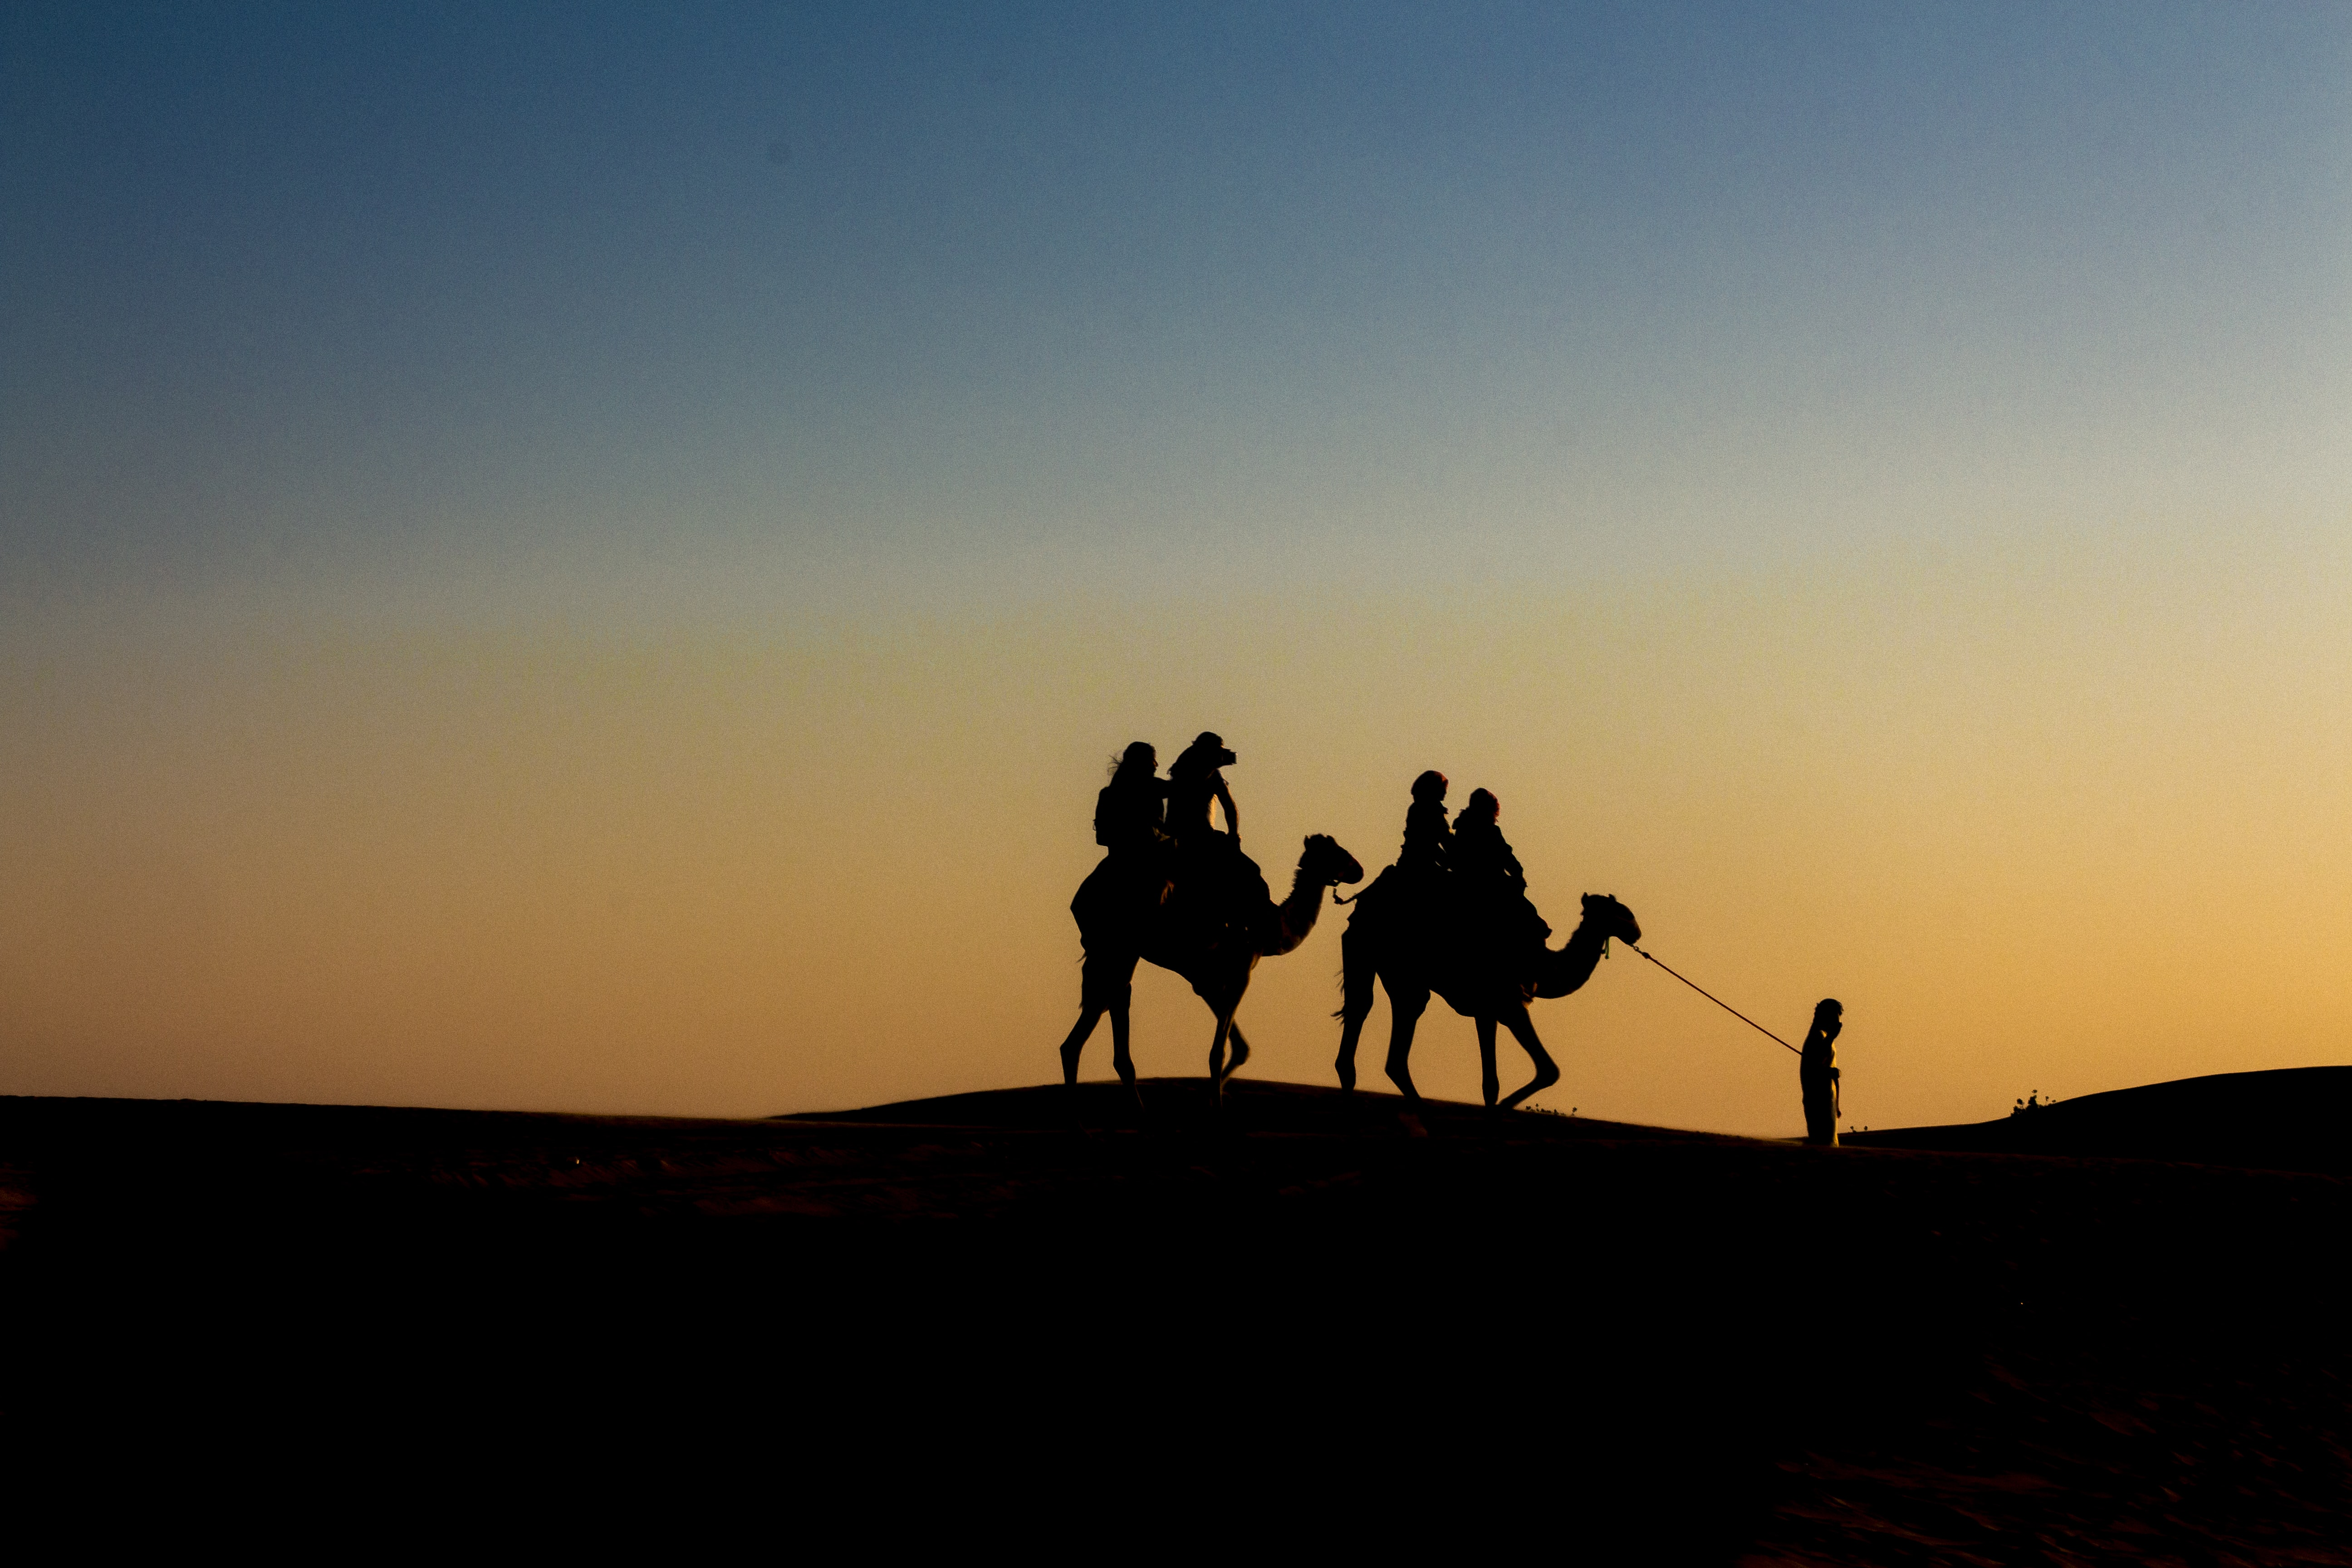 silhouette of people riding camels